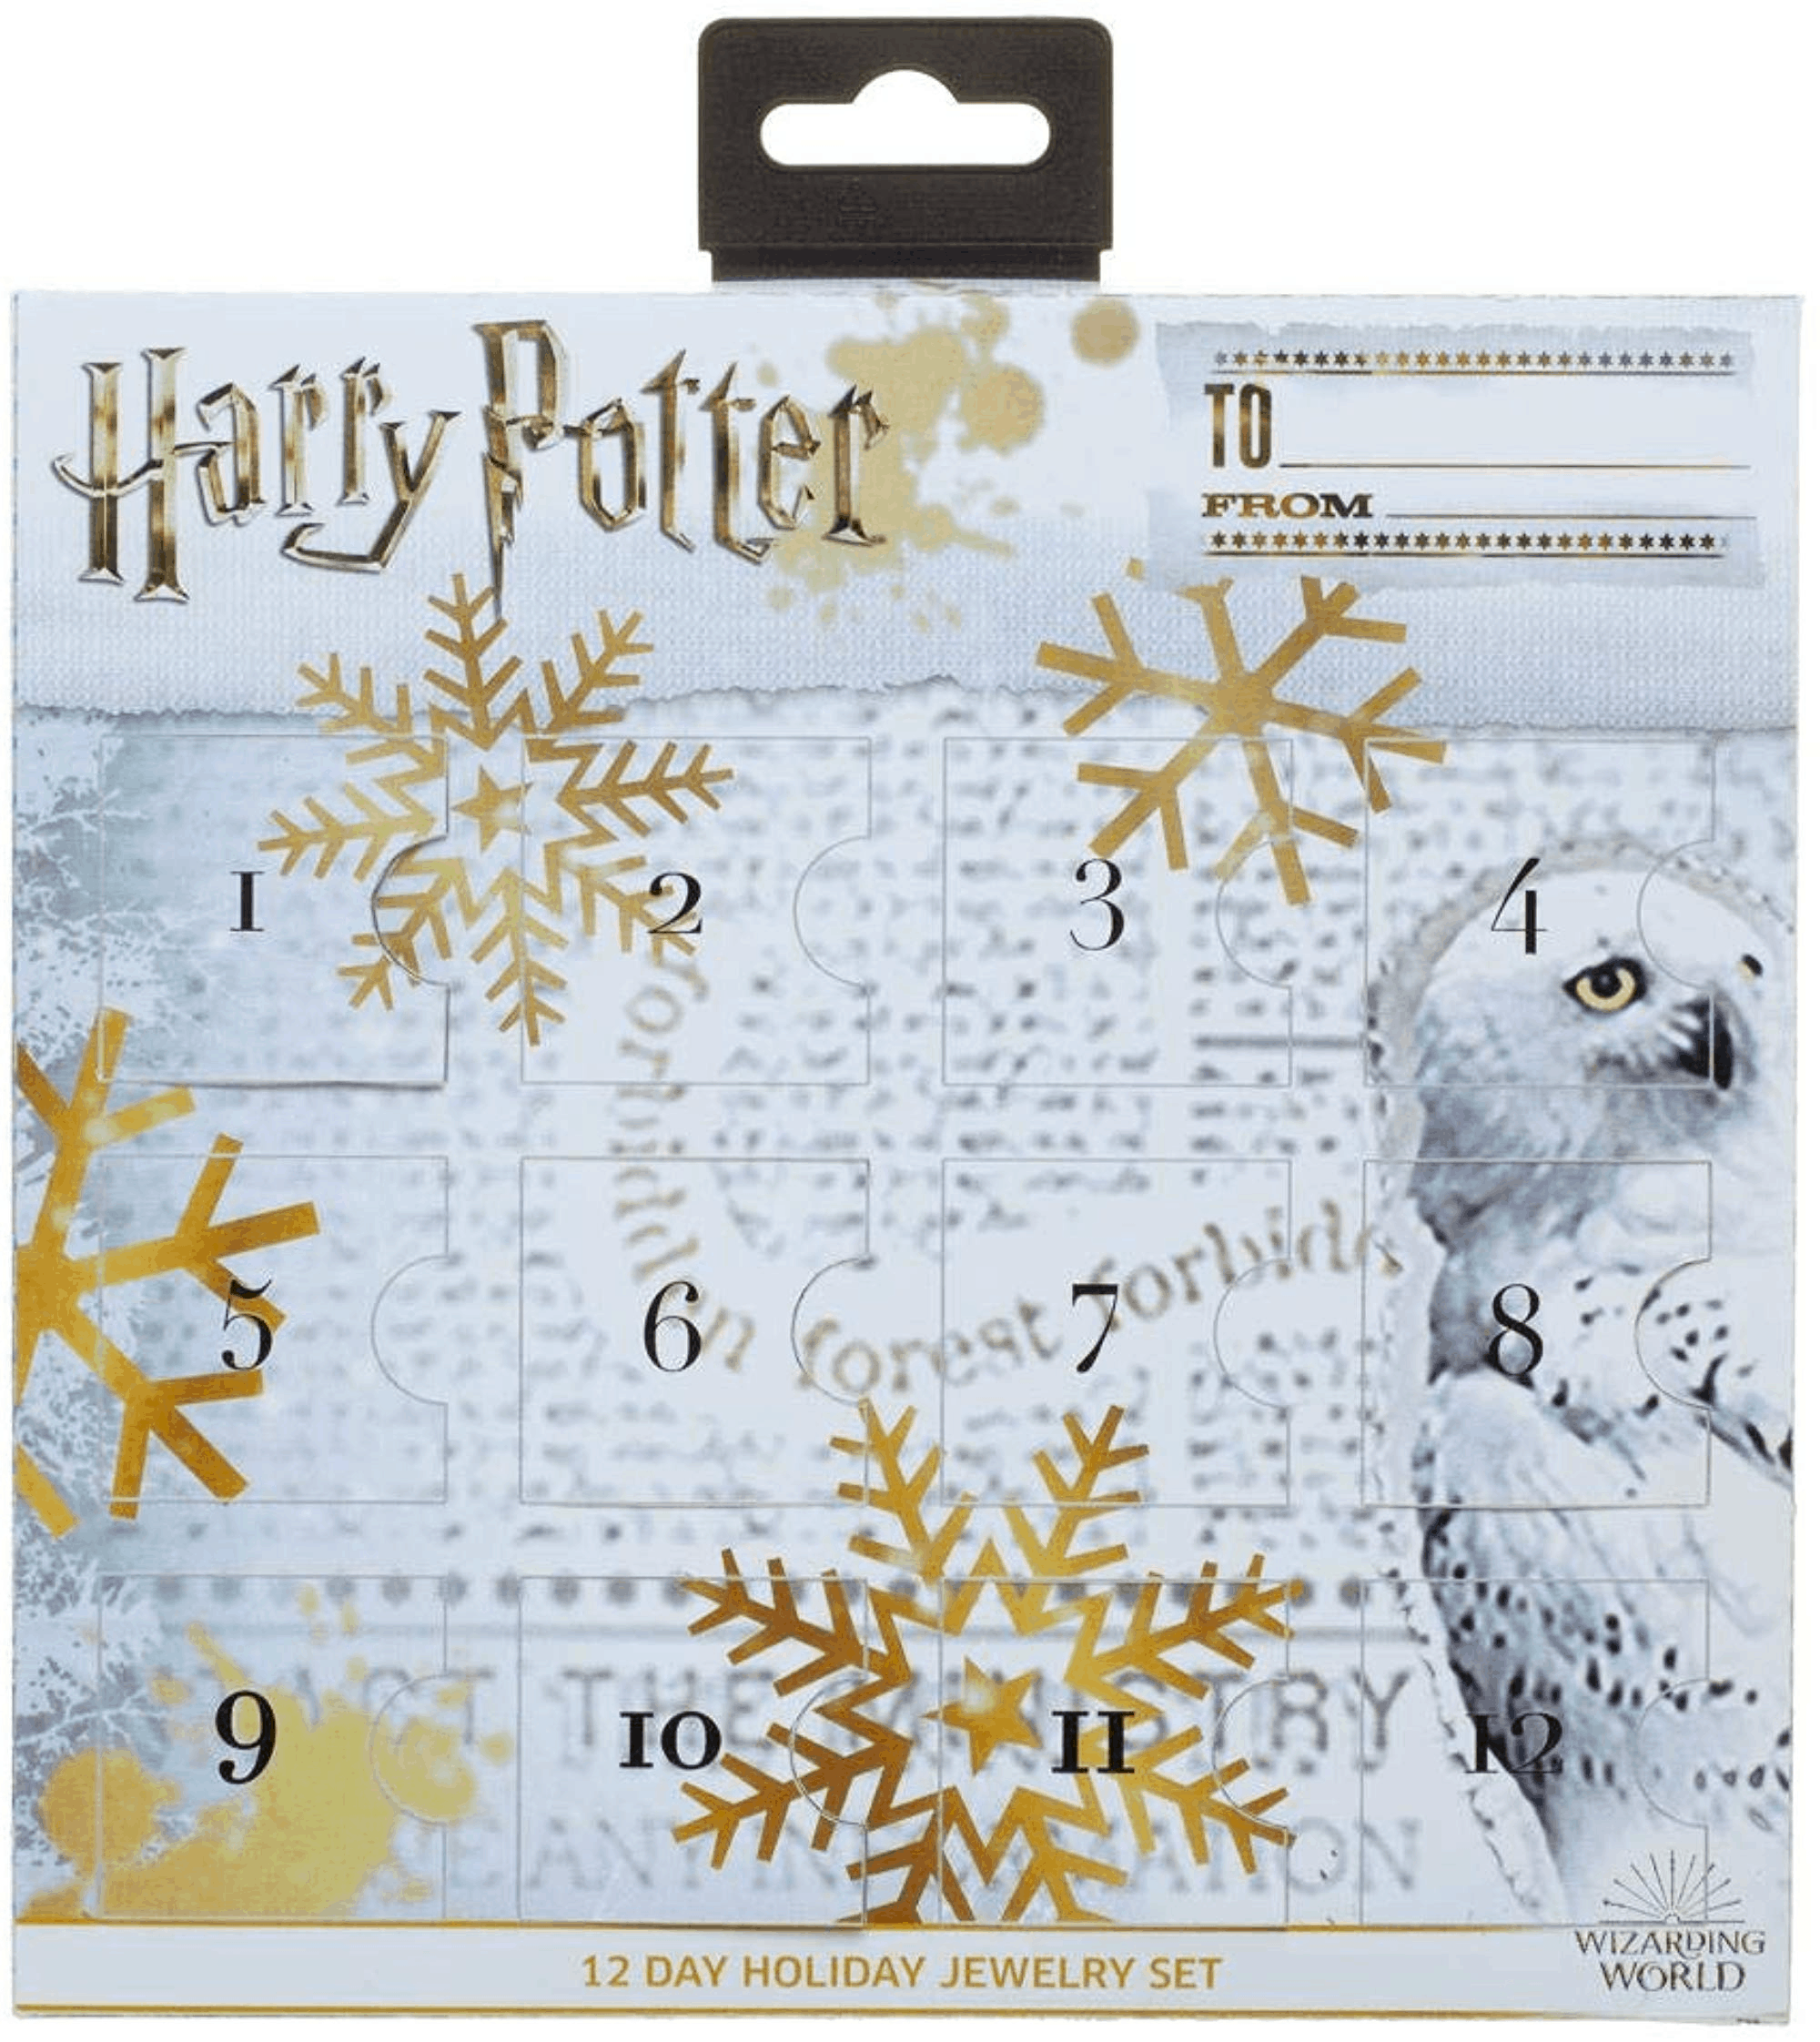 2019 Harry Potter Jewelry Advent Calendar Available Now!